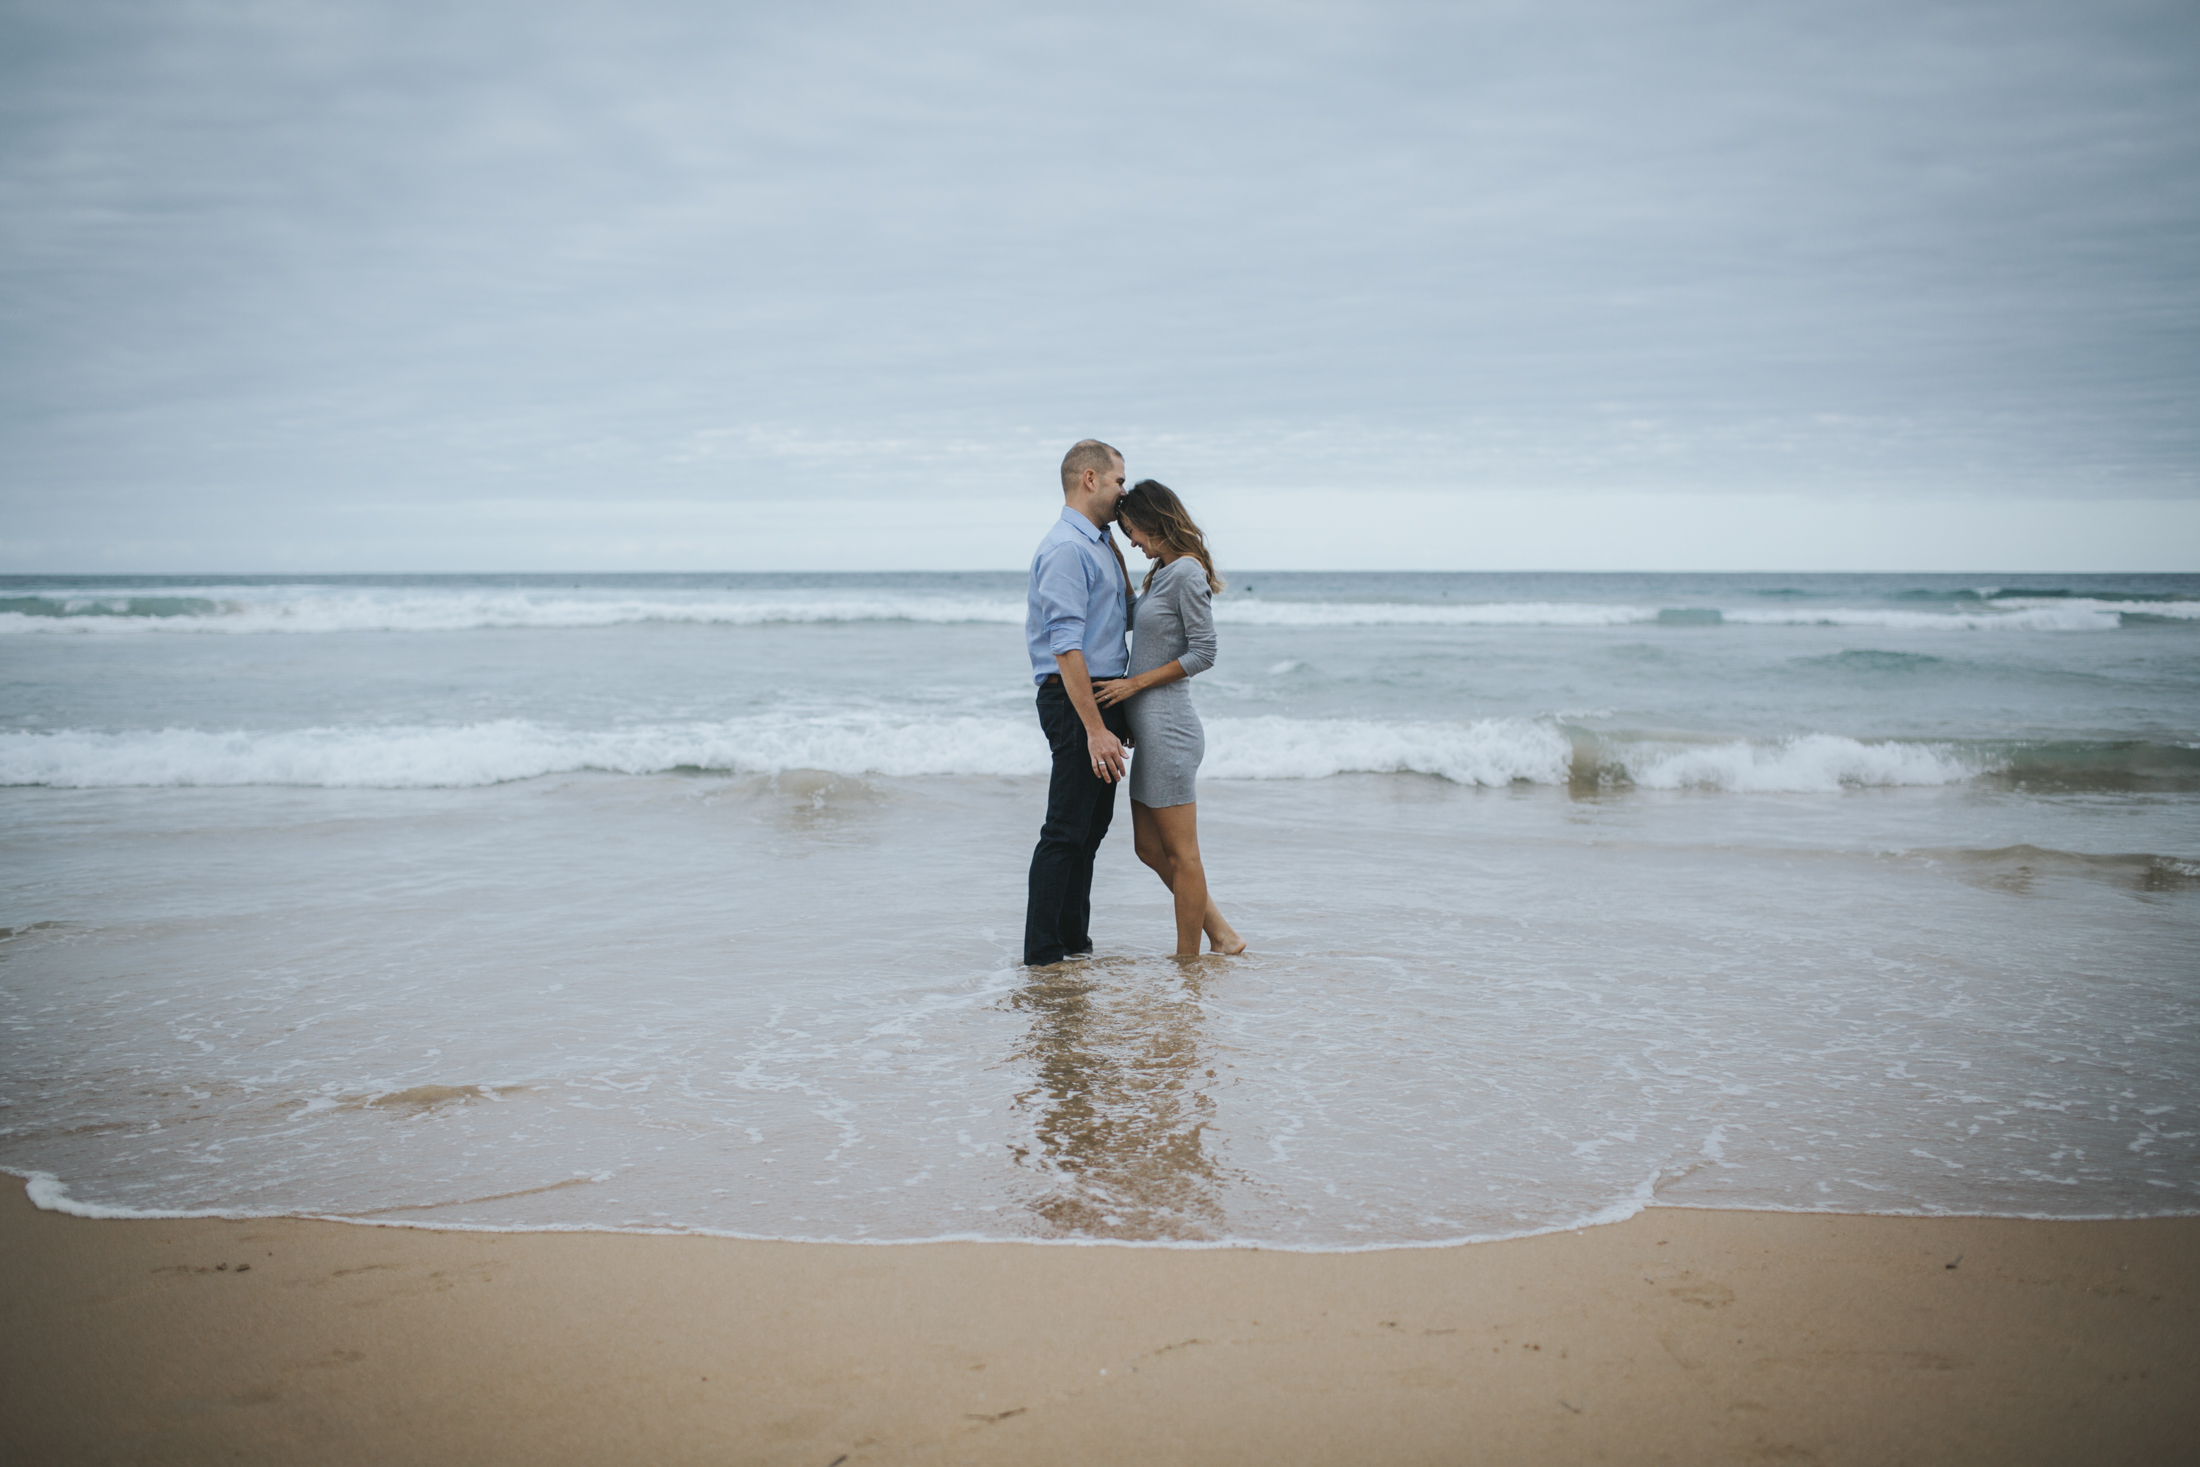 sheridan_nilsson_northern_beaches_family_photographer_maternity.-1722.jpg